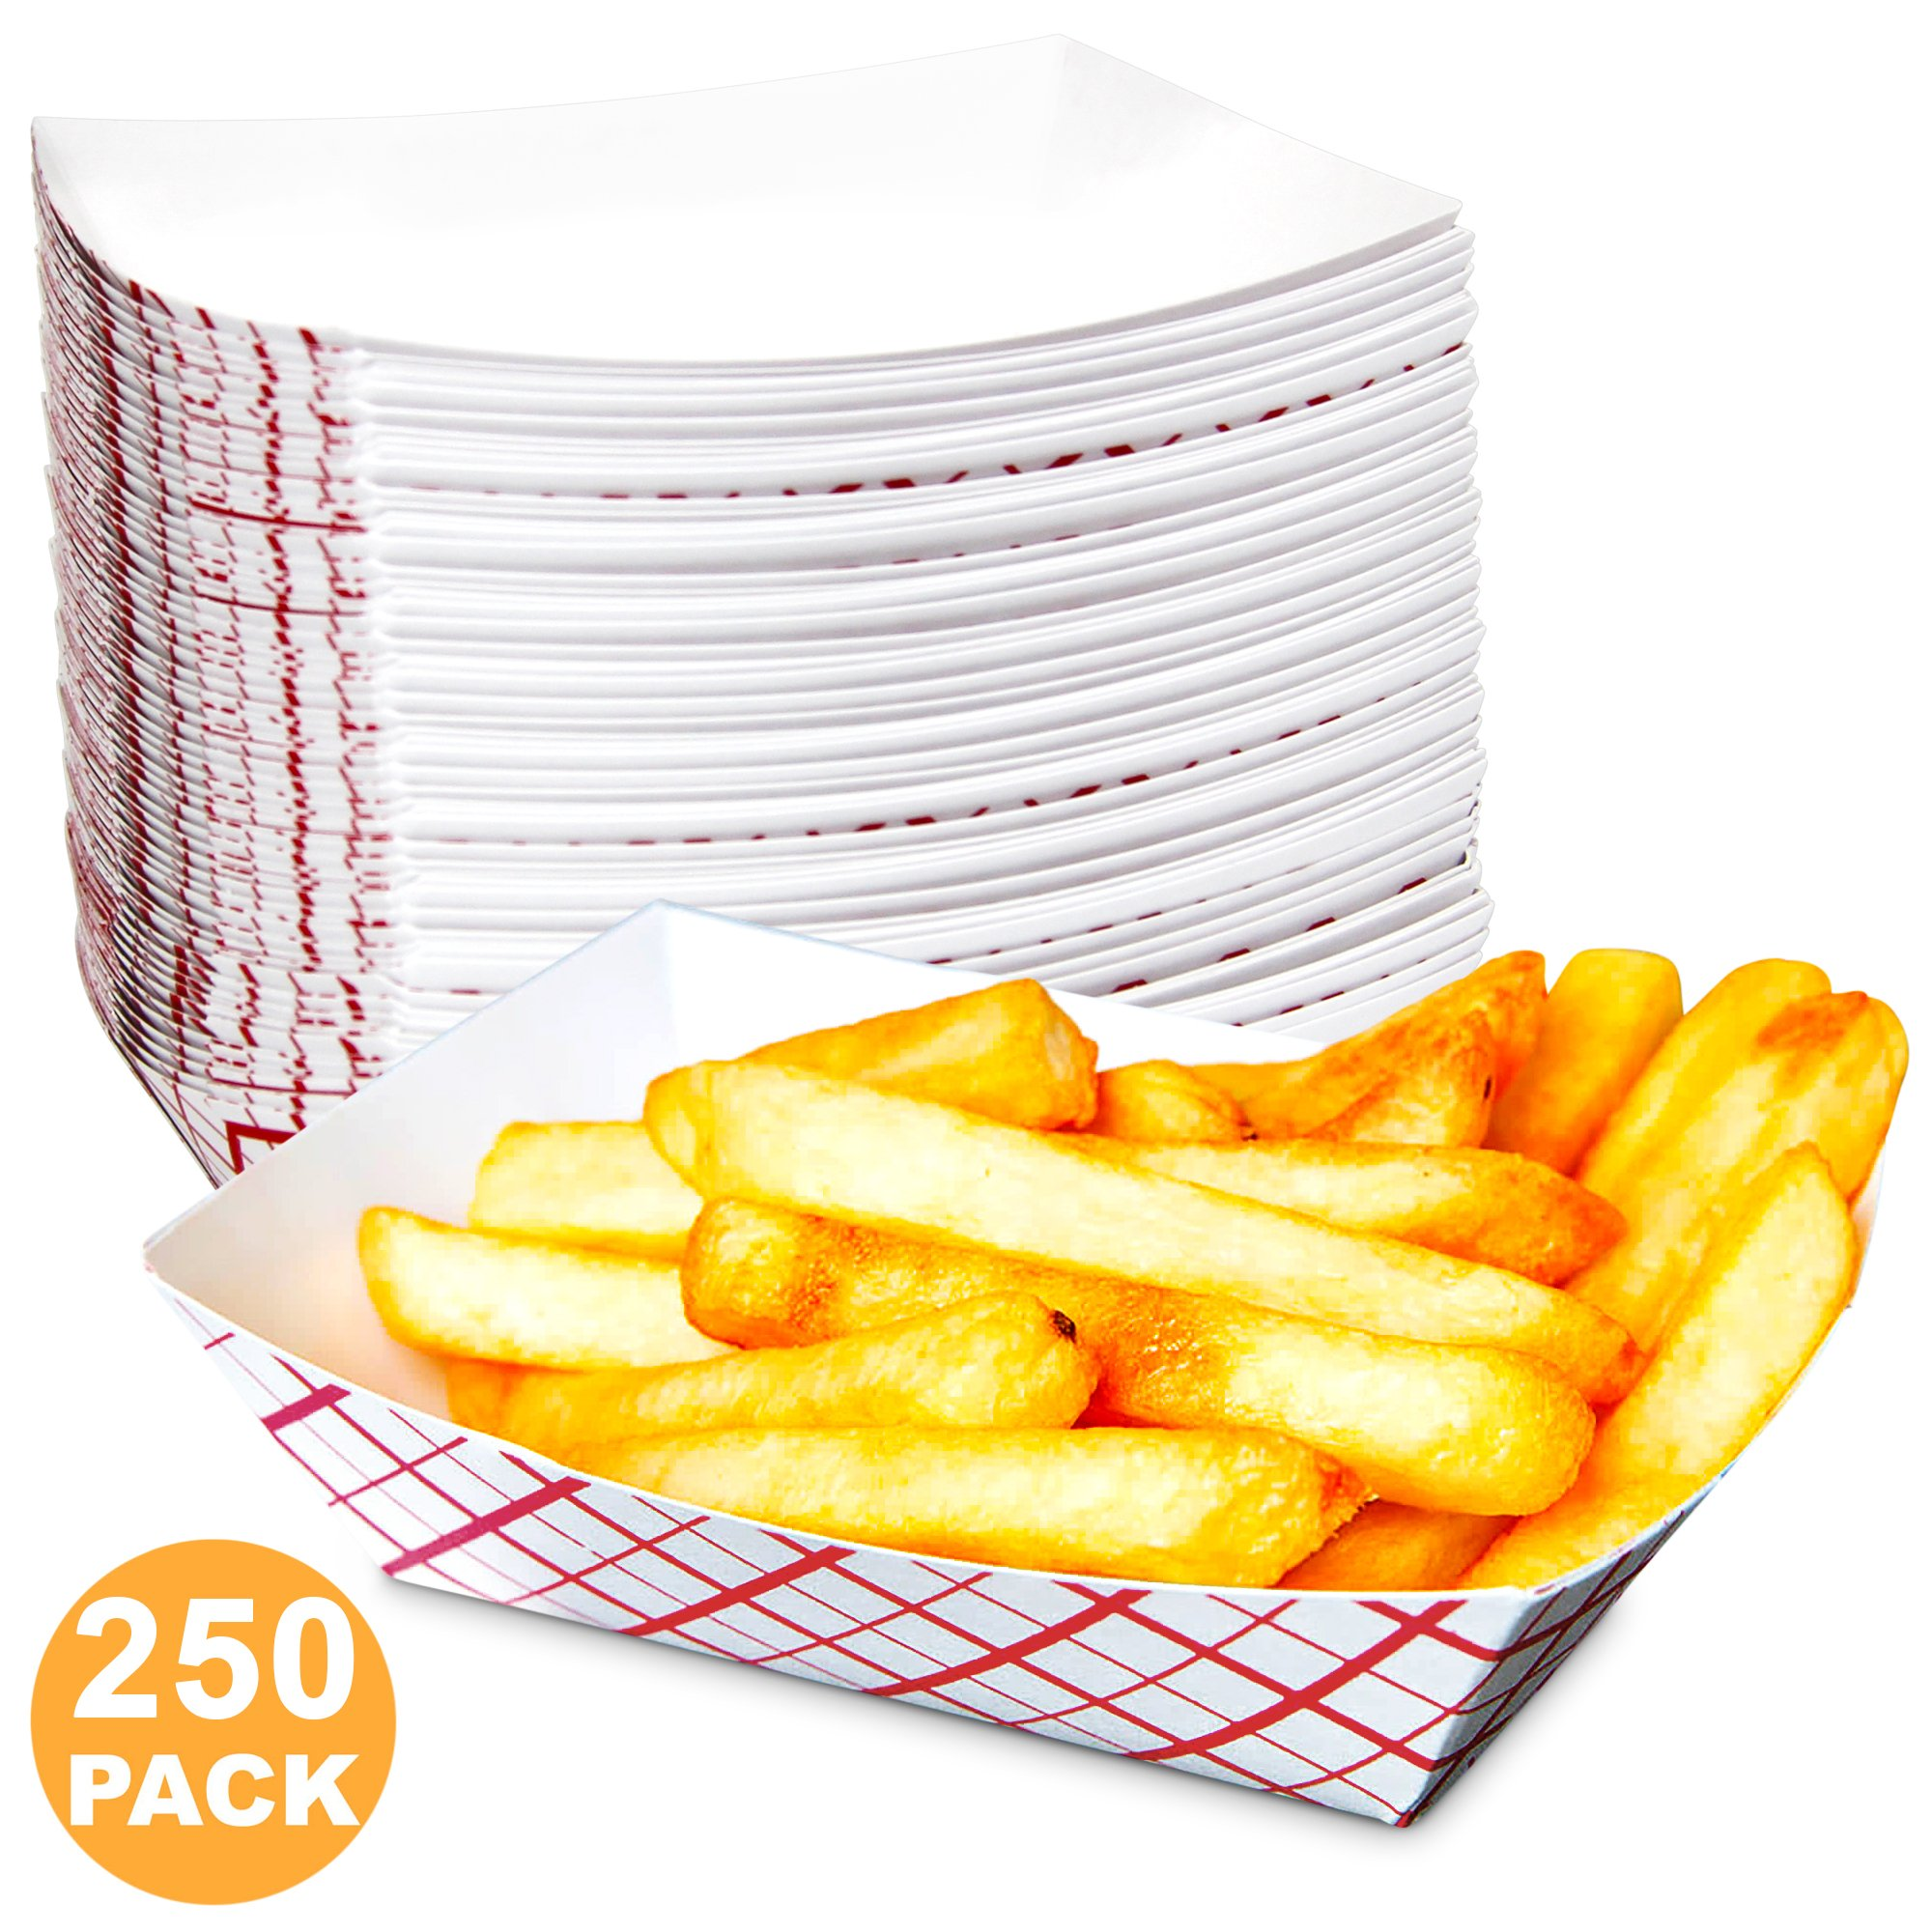 0.5 lb Heavy Duty Disposable Red Check Paper Food Trays Grease Resistant Fast Food Paperboard Boat Basket for Parties Fairs Picnics Carnivals, Holds Tacos Nachos Fries Hot Corn Dogs [250 Pack]